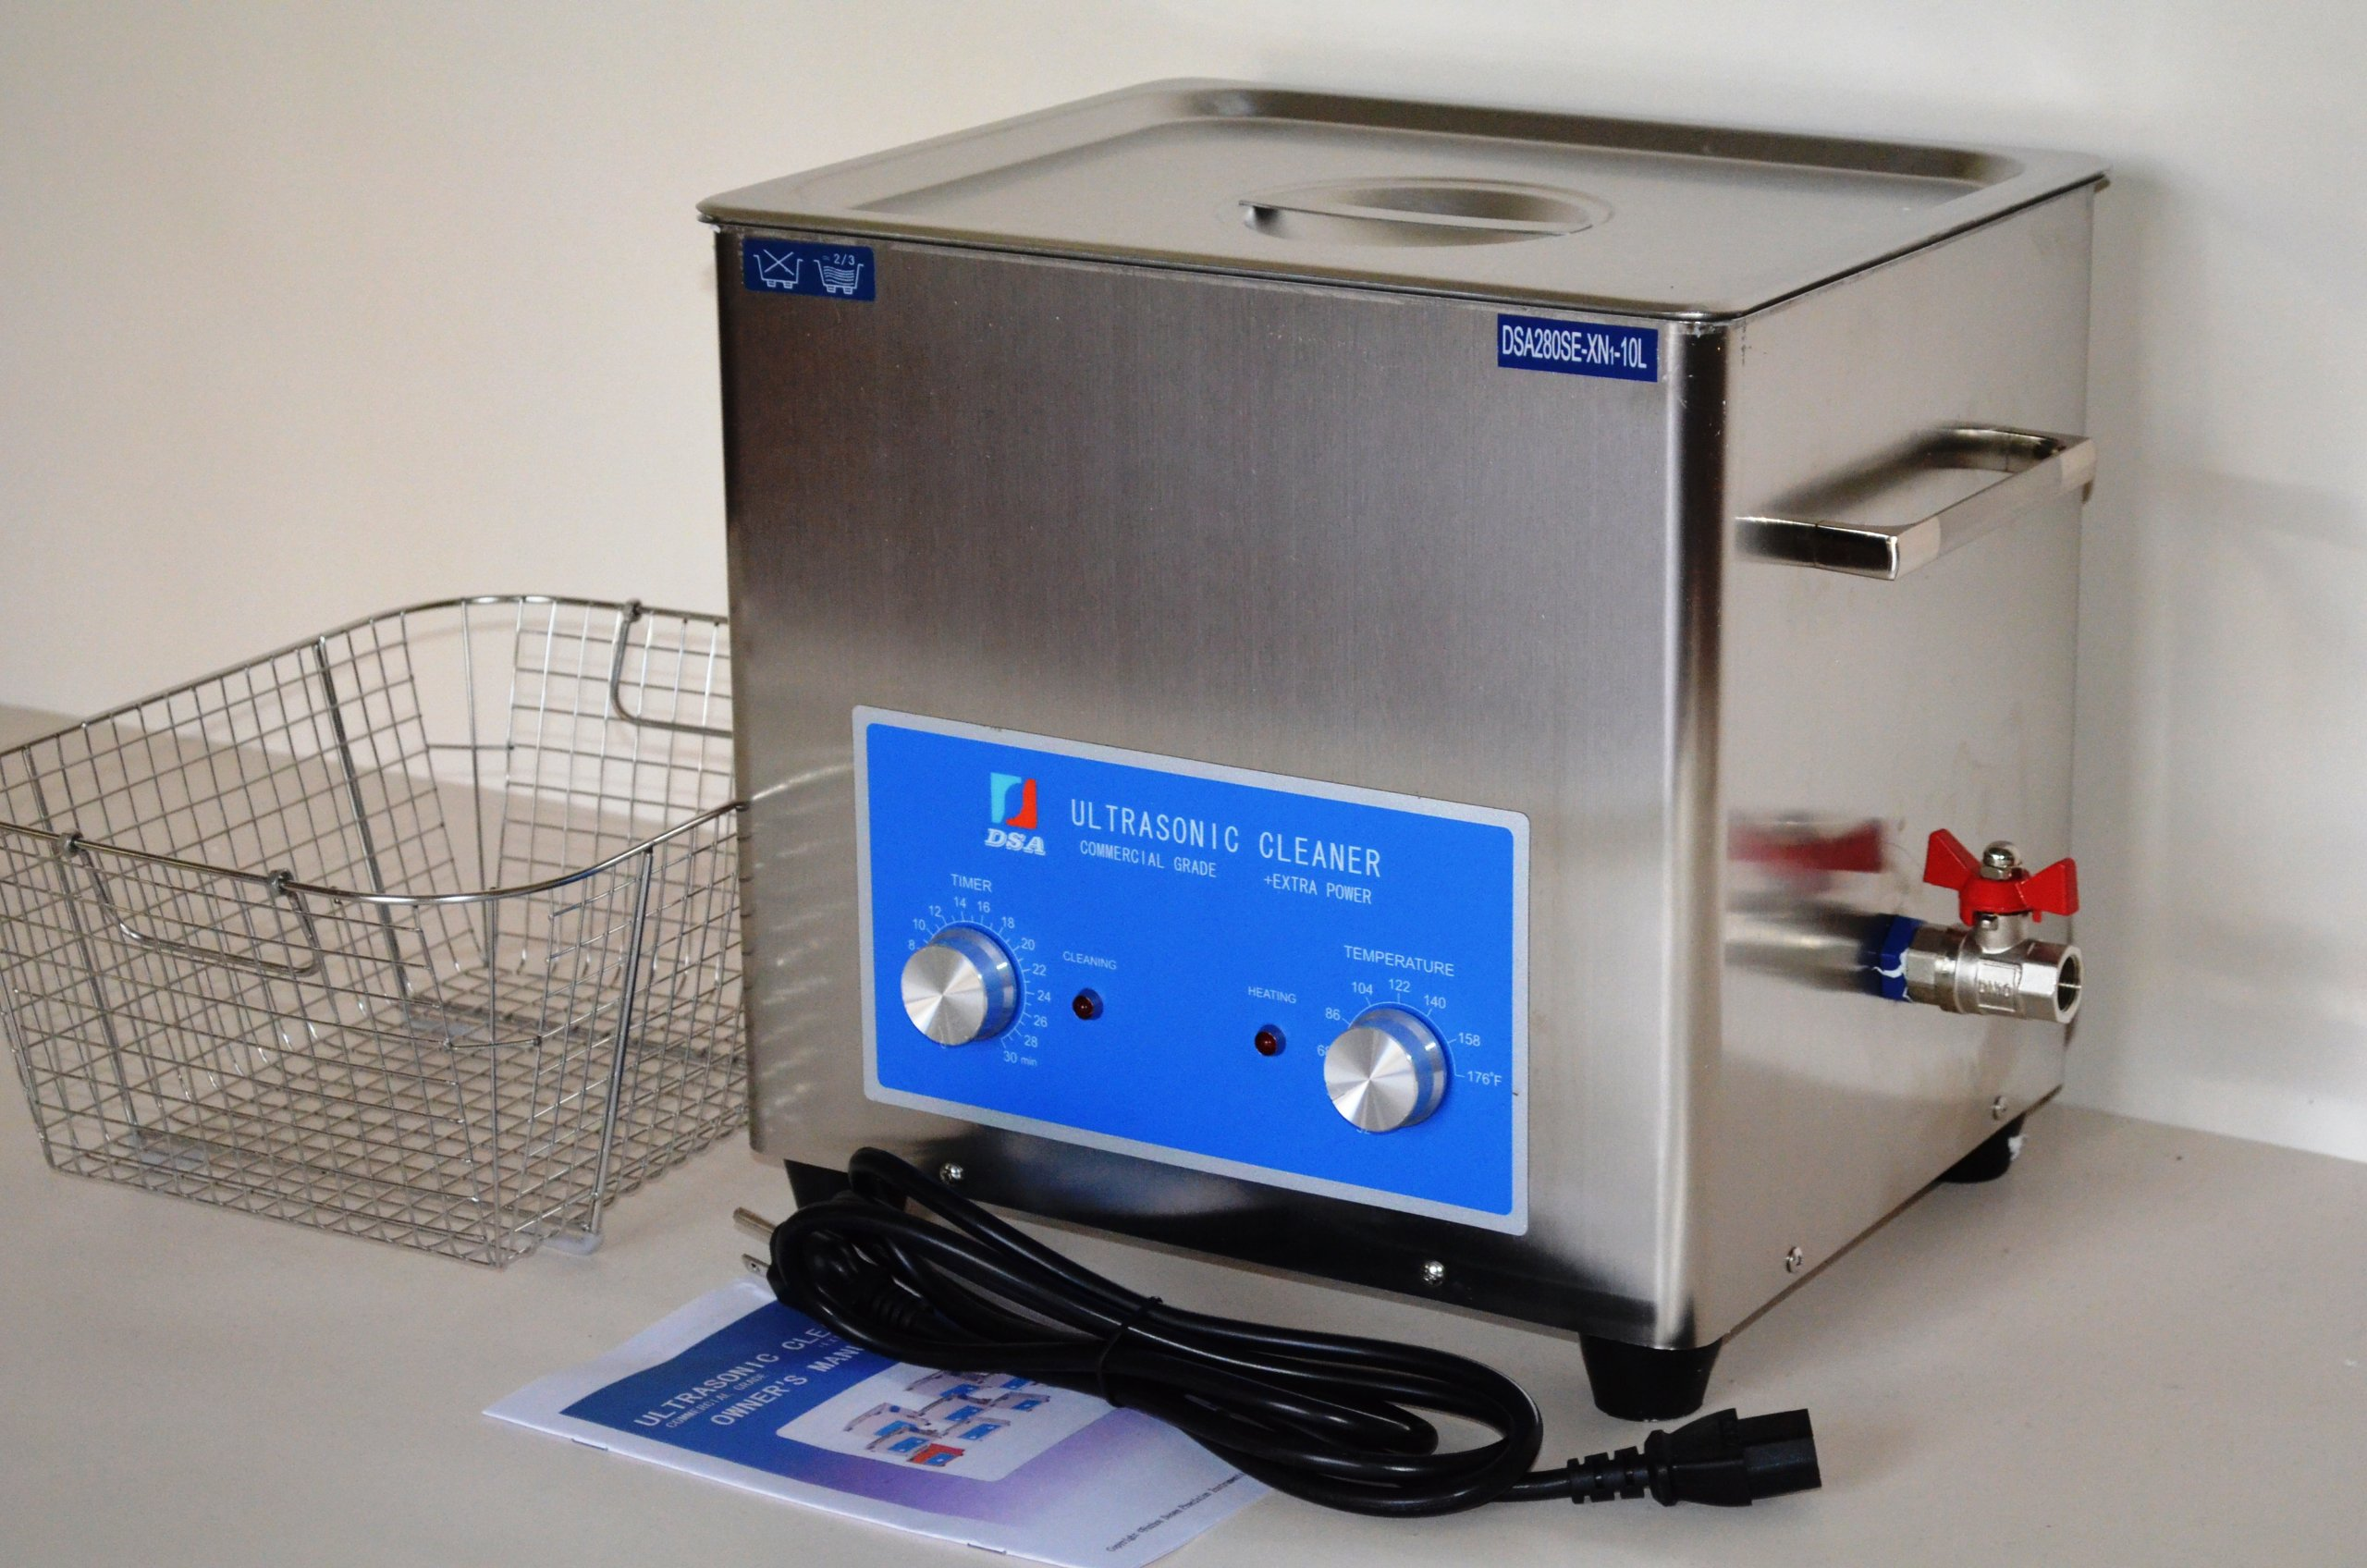 FULL SET: DSA280SE-XN1 10L 2.6 Gal 880W 40 KHz HEATED INDUSTRIAL STAINLESS STEEL ULTRASONIC PARTS CLEANER WASHER MACHINE WITH INBOARD BASKET AND TOP COVER LID PROFESSIONAL JEWELRY DENTAL TATTOO CAR REPAIR SHOPS USE